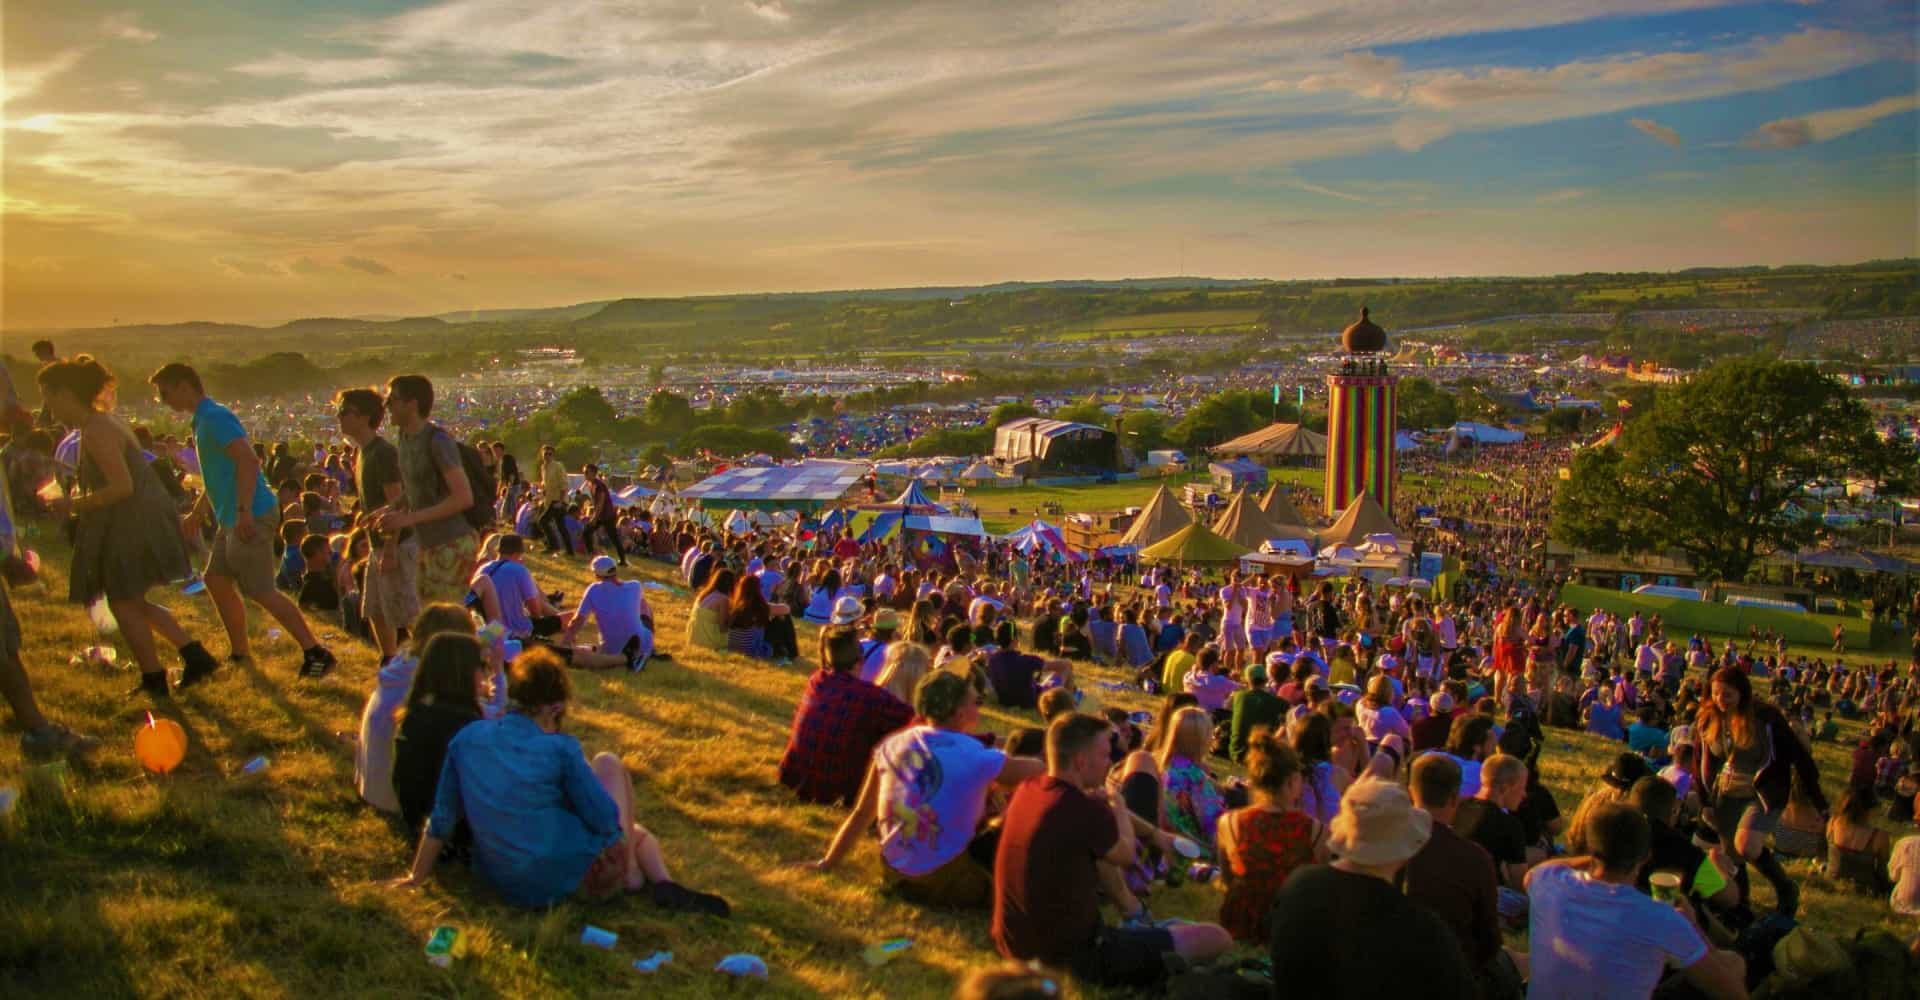 Here's how to get tickets for Glastonbury 2019